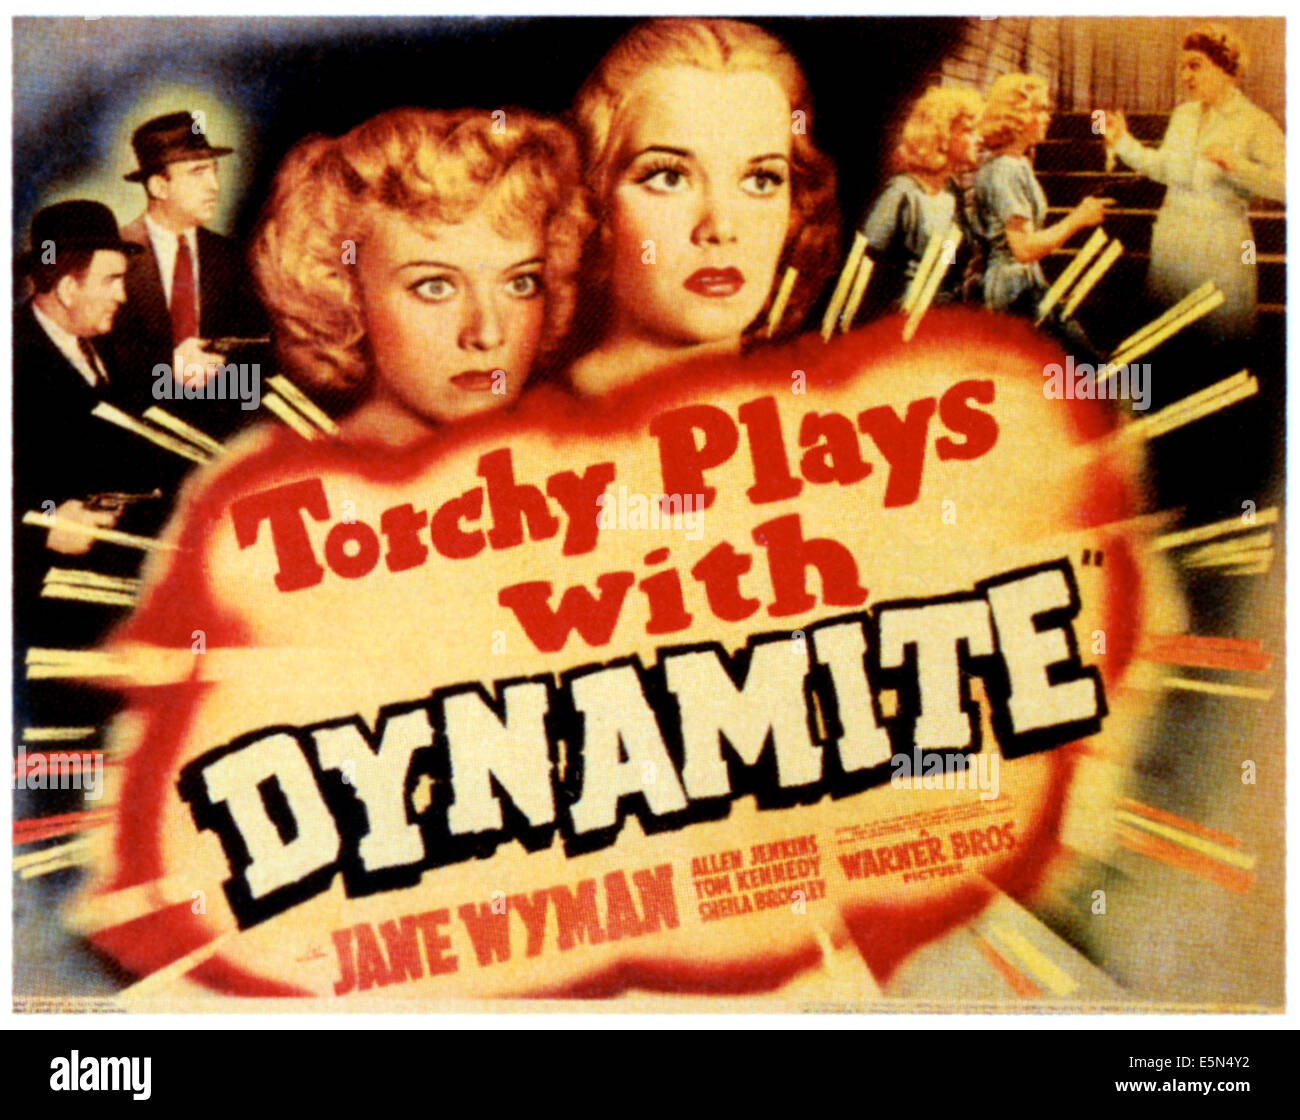 torchy-plays-with-dynamite-aka-torchy-bl